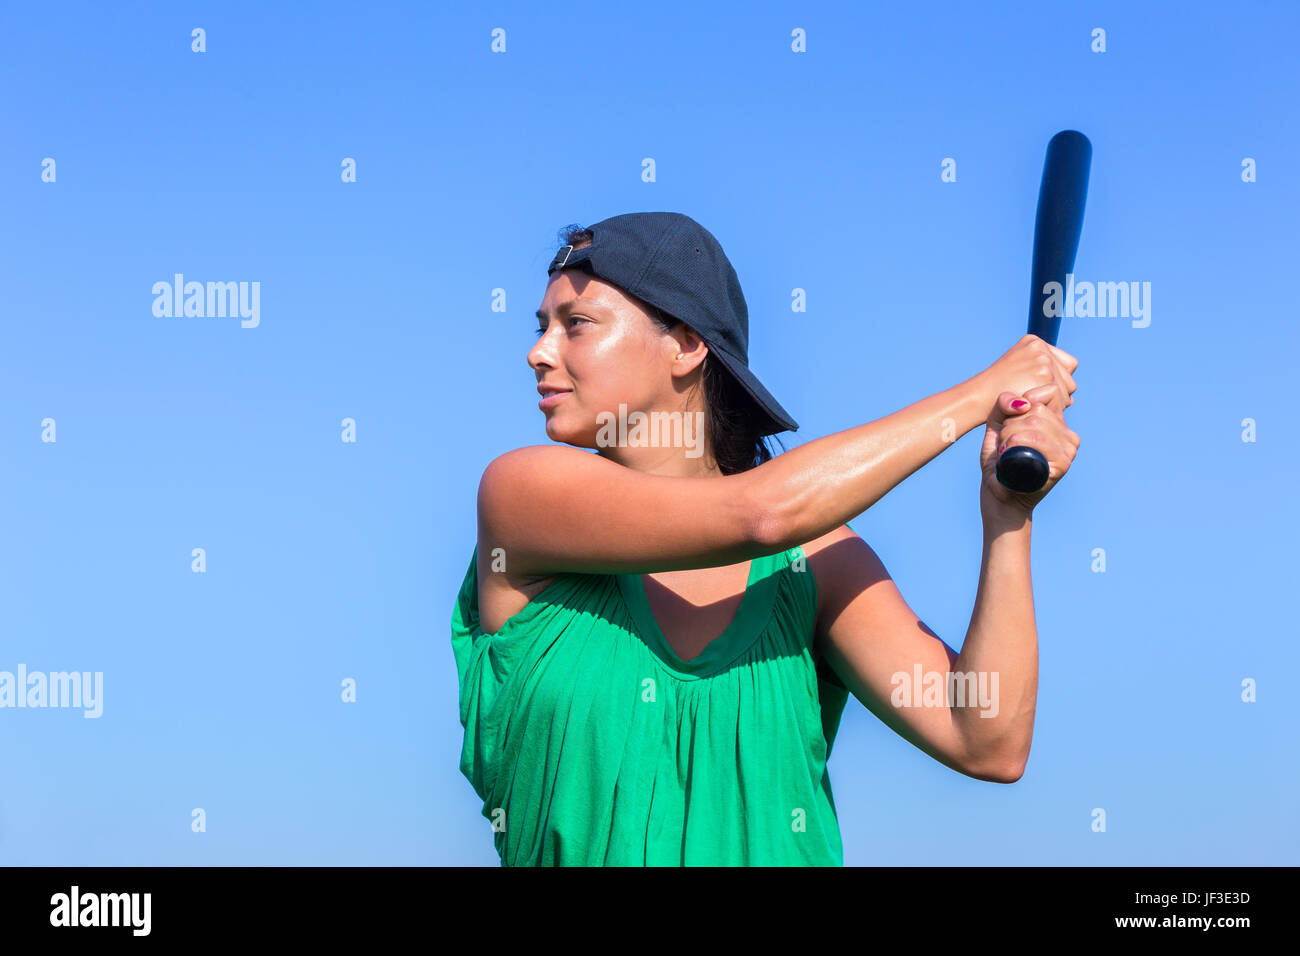 Young woman with baseball bat and cap - Stock Image